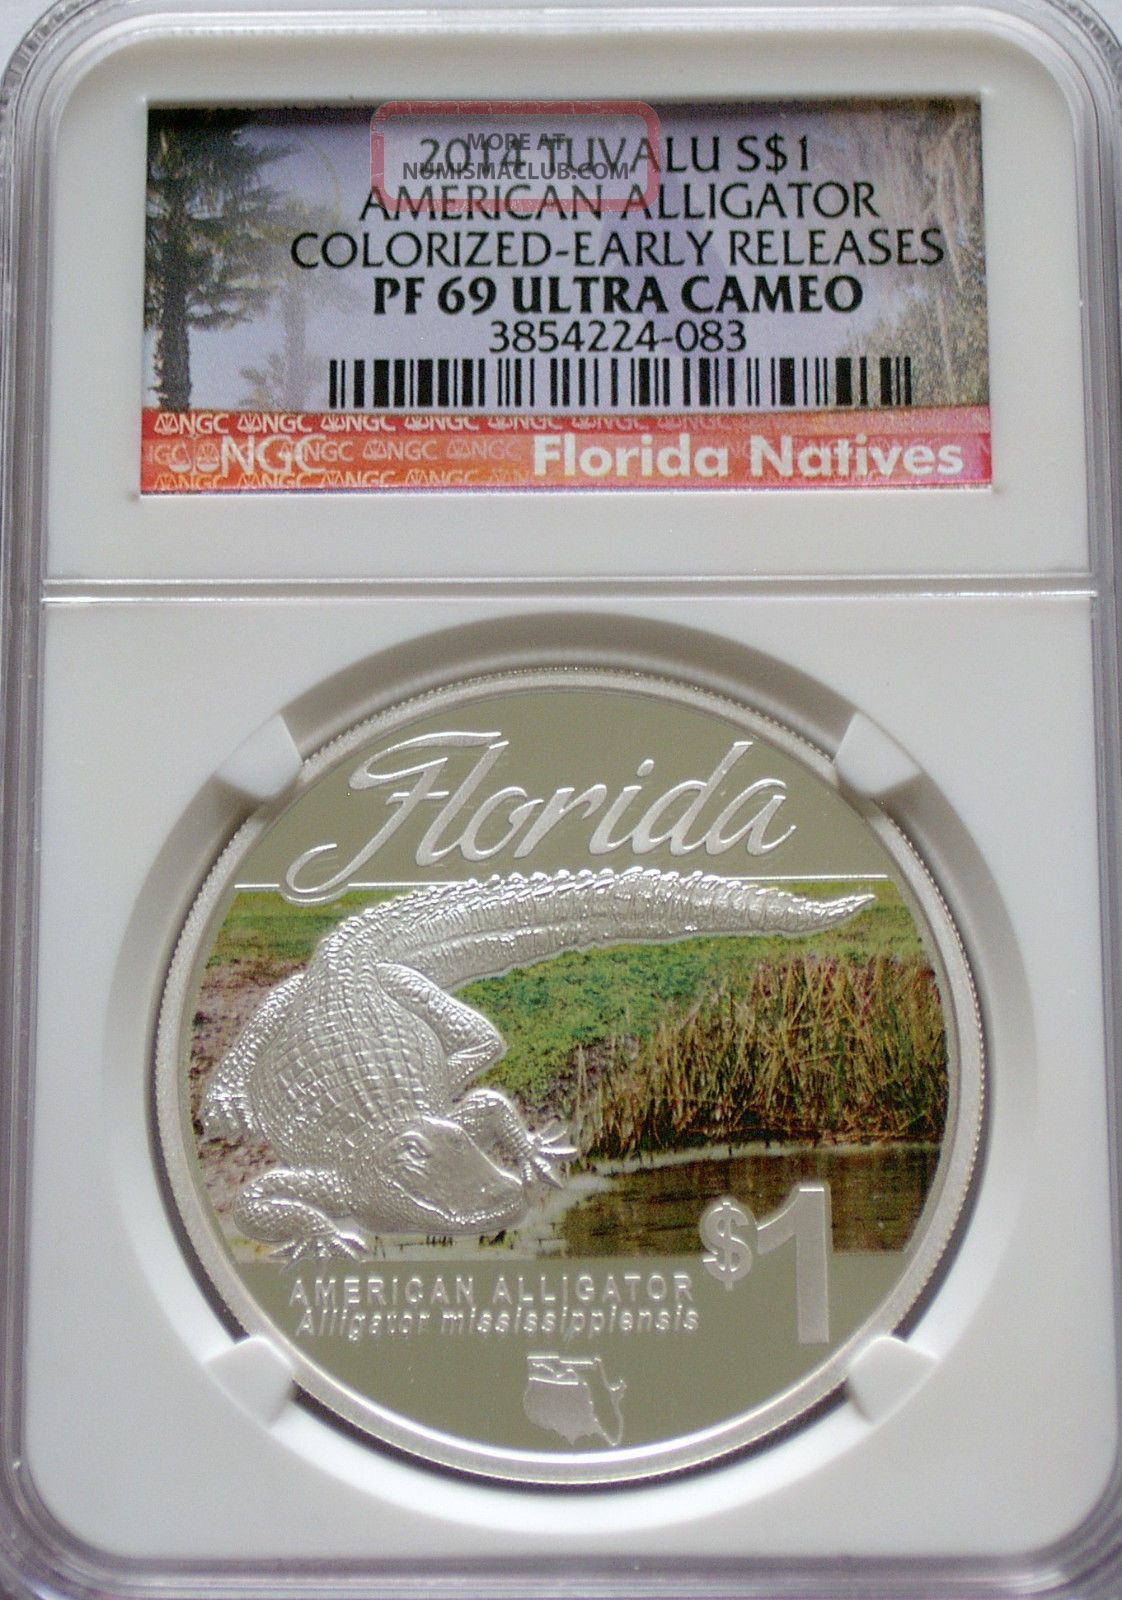 Ngc 2014 Tuvalu American Alligator 1 Pf69 Early R Florida